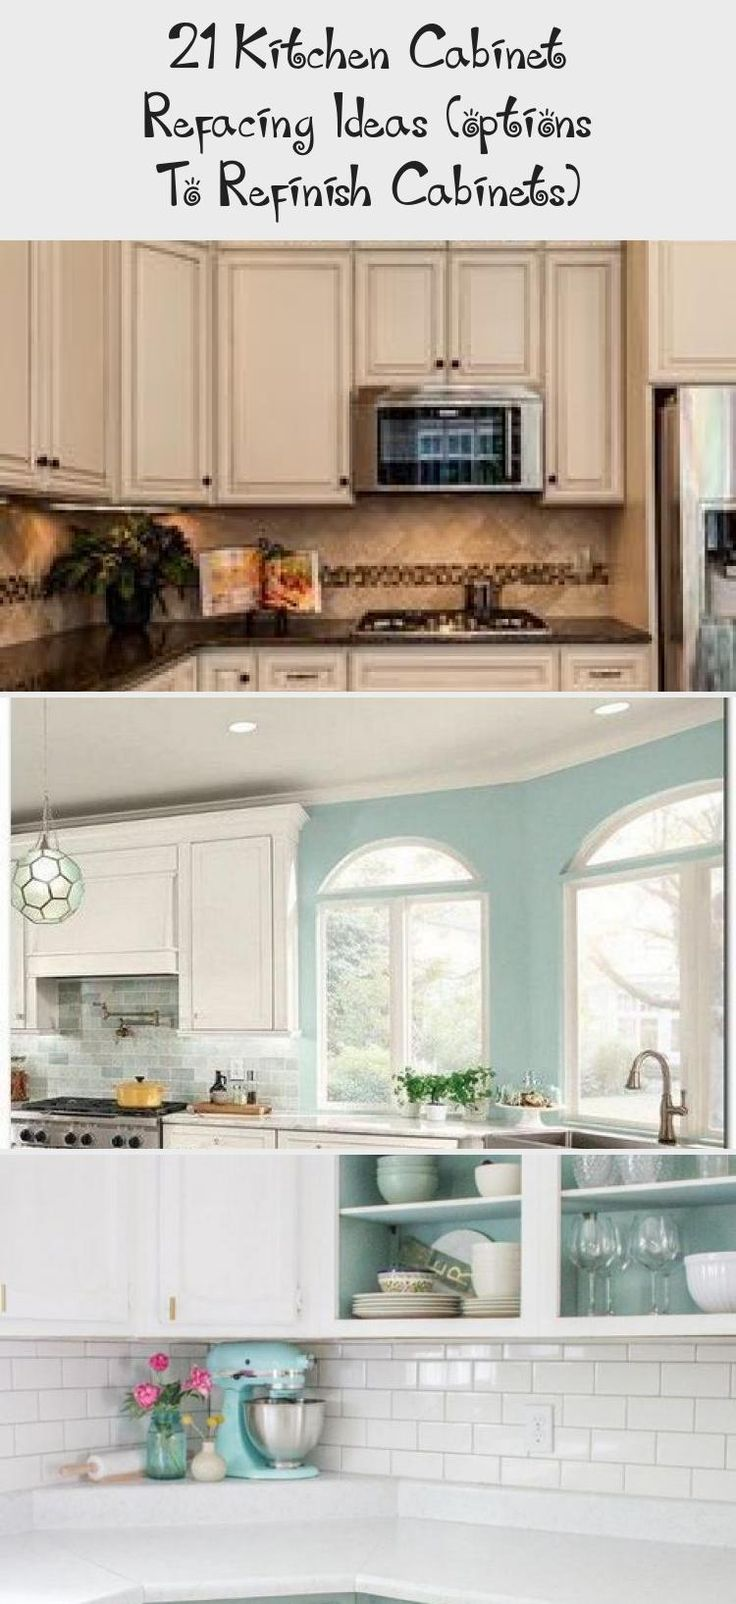 21 kitchen cabinet refacing ideas options to refinish cabinets refacing kitchen cabinets on kitchen cabinets refacing id=14030